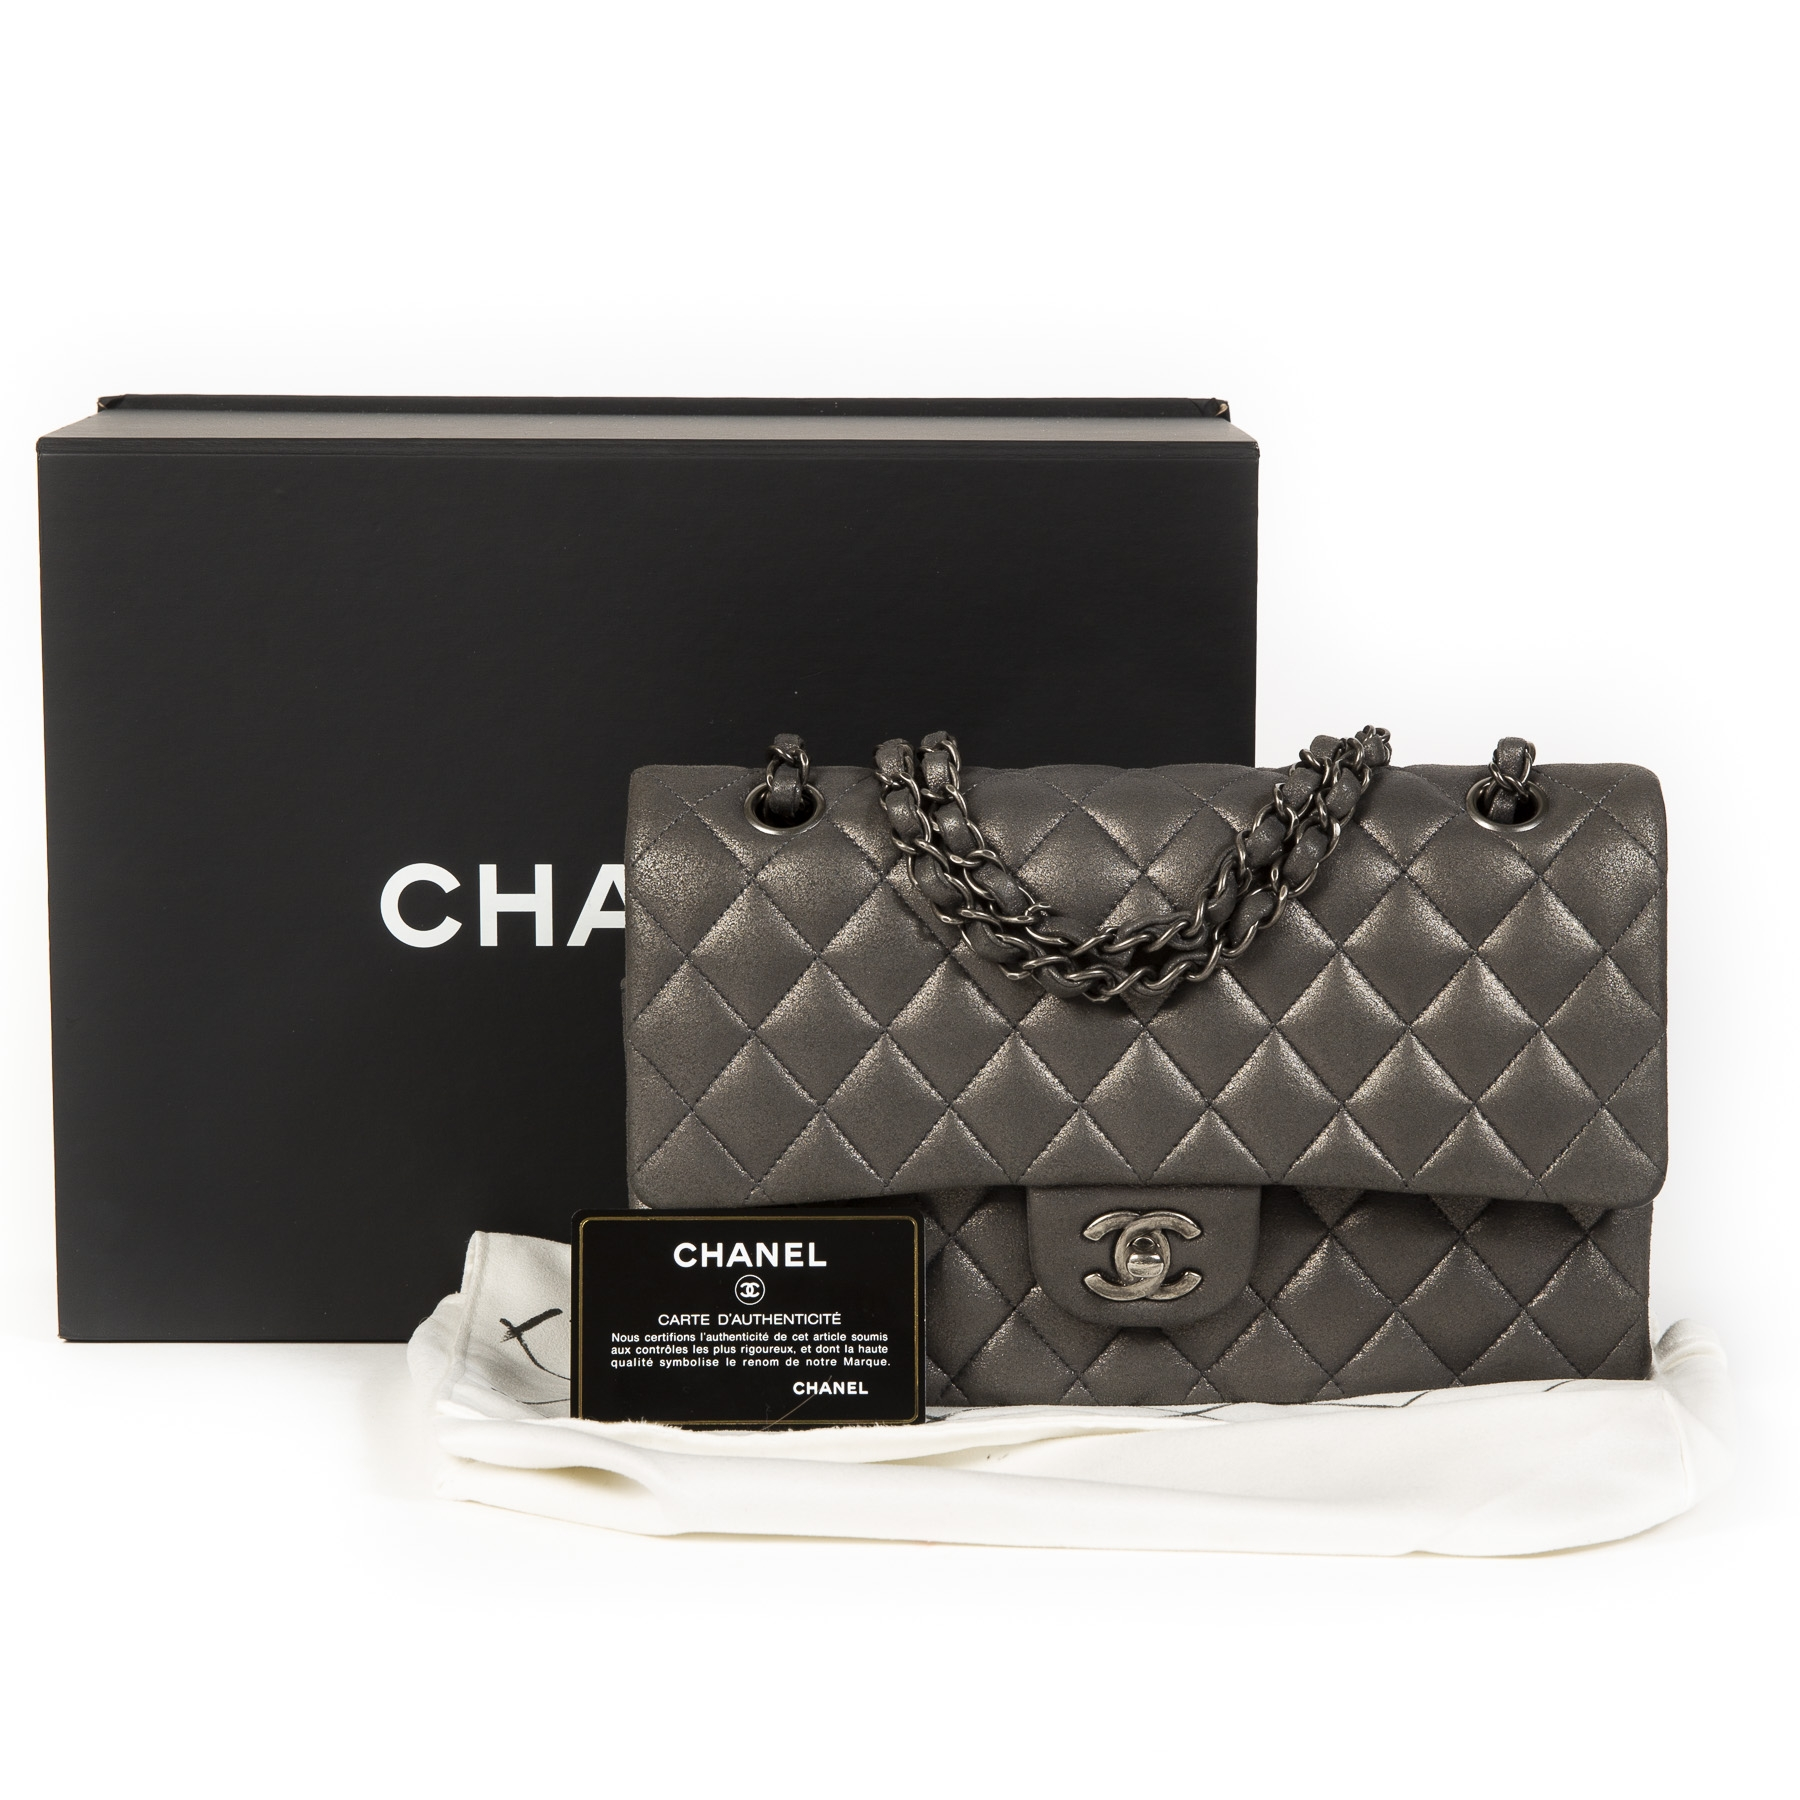 Authentique seconde main vintage Chanel Medium Classic Flapbag Metallic Silver achète en ligne webshop LabelLOV